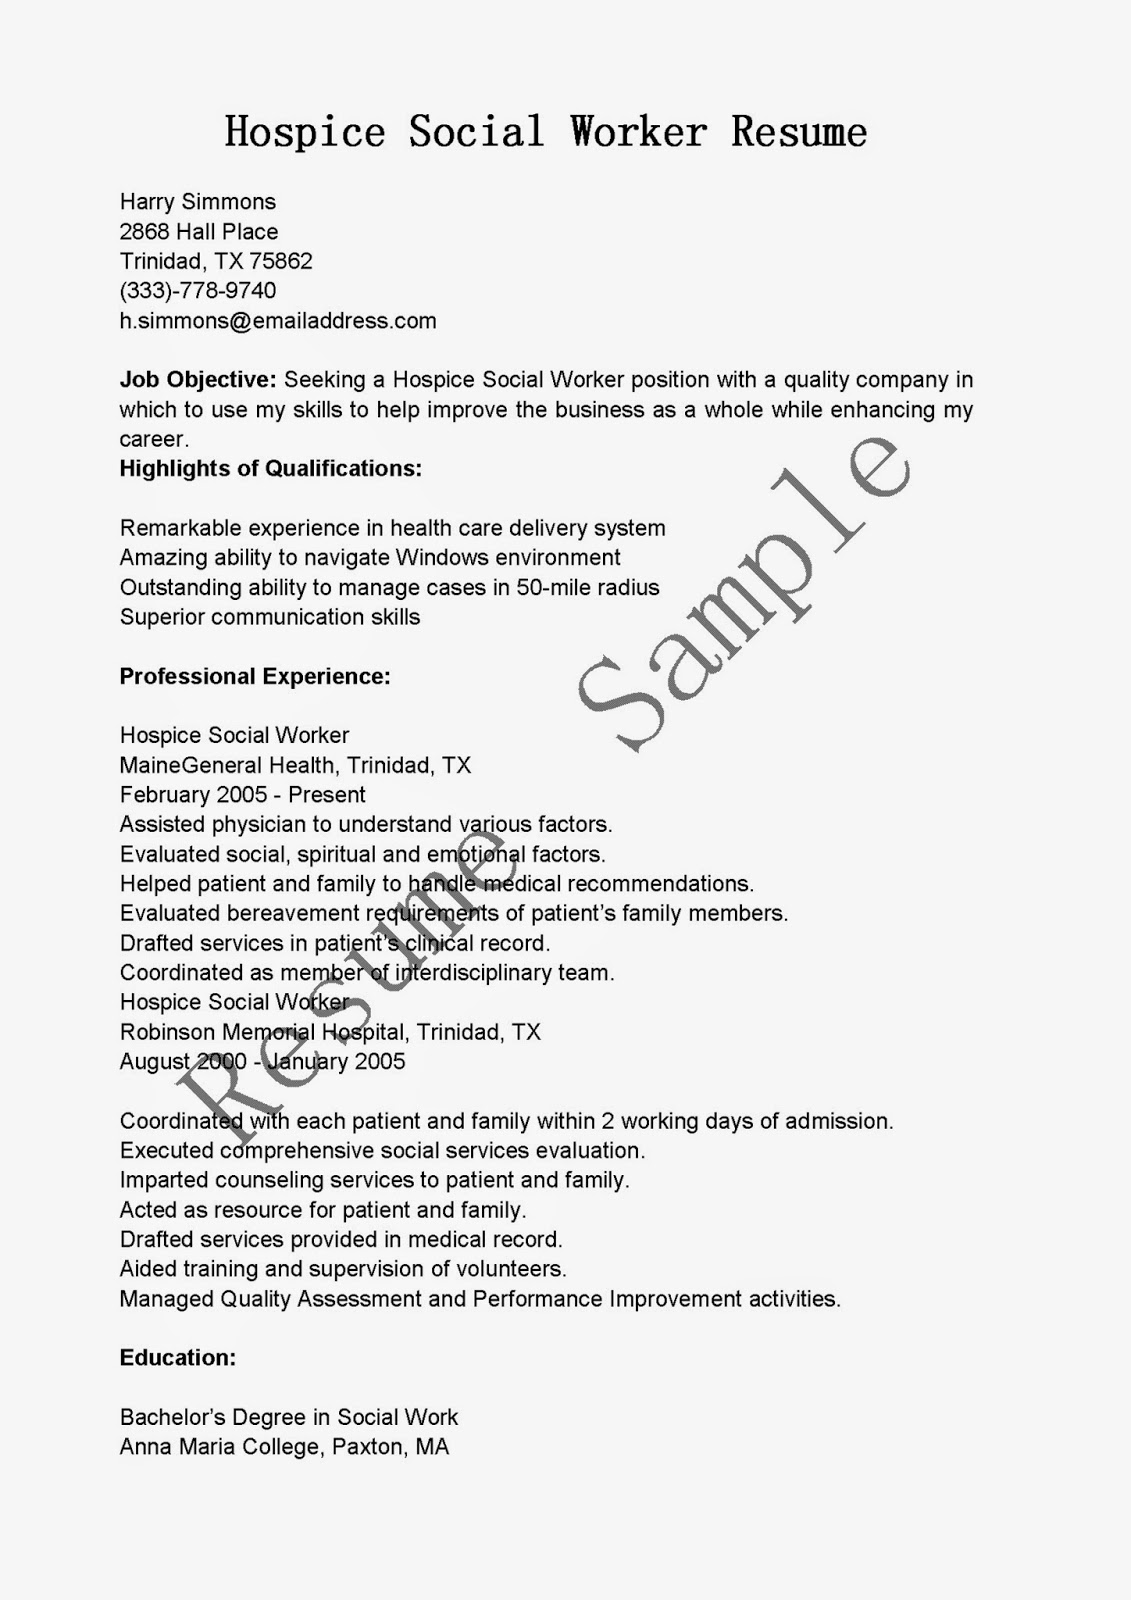 Hospice Social Worker Cover Letter Examples